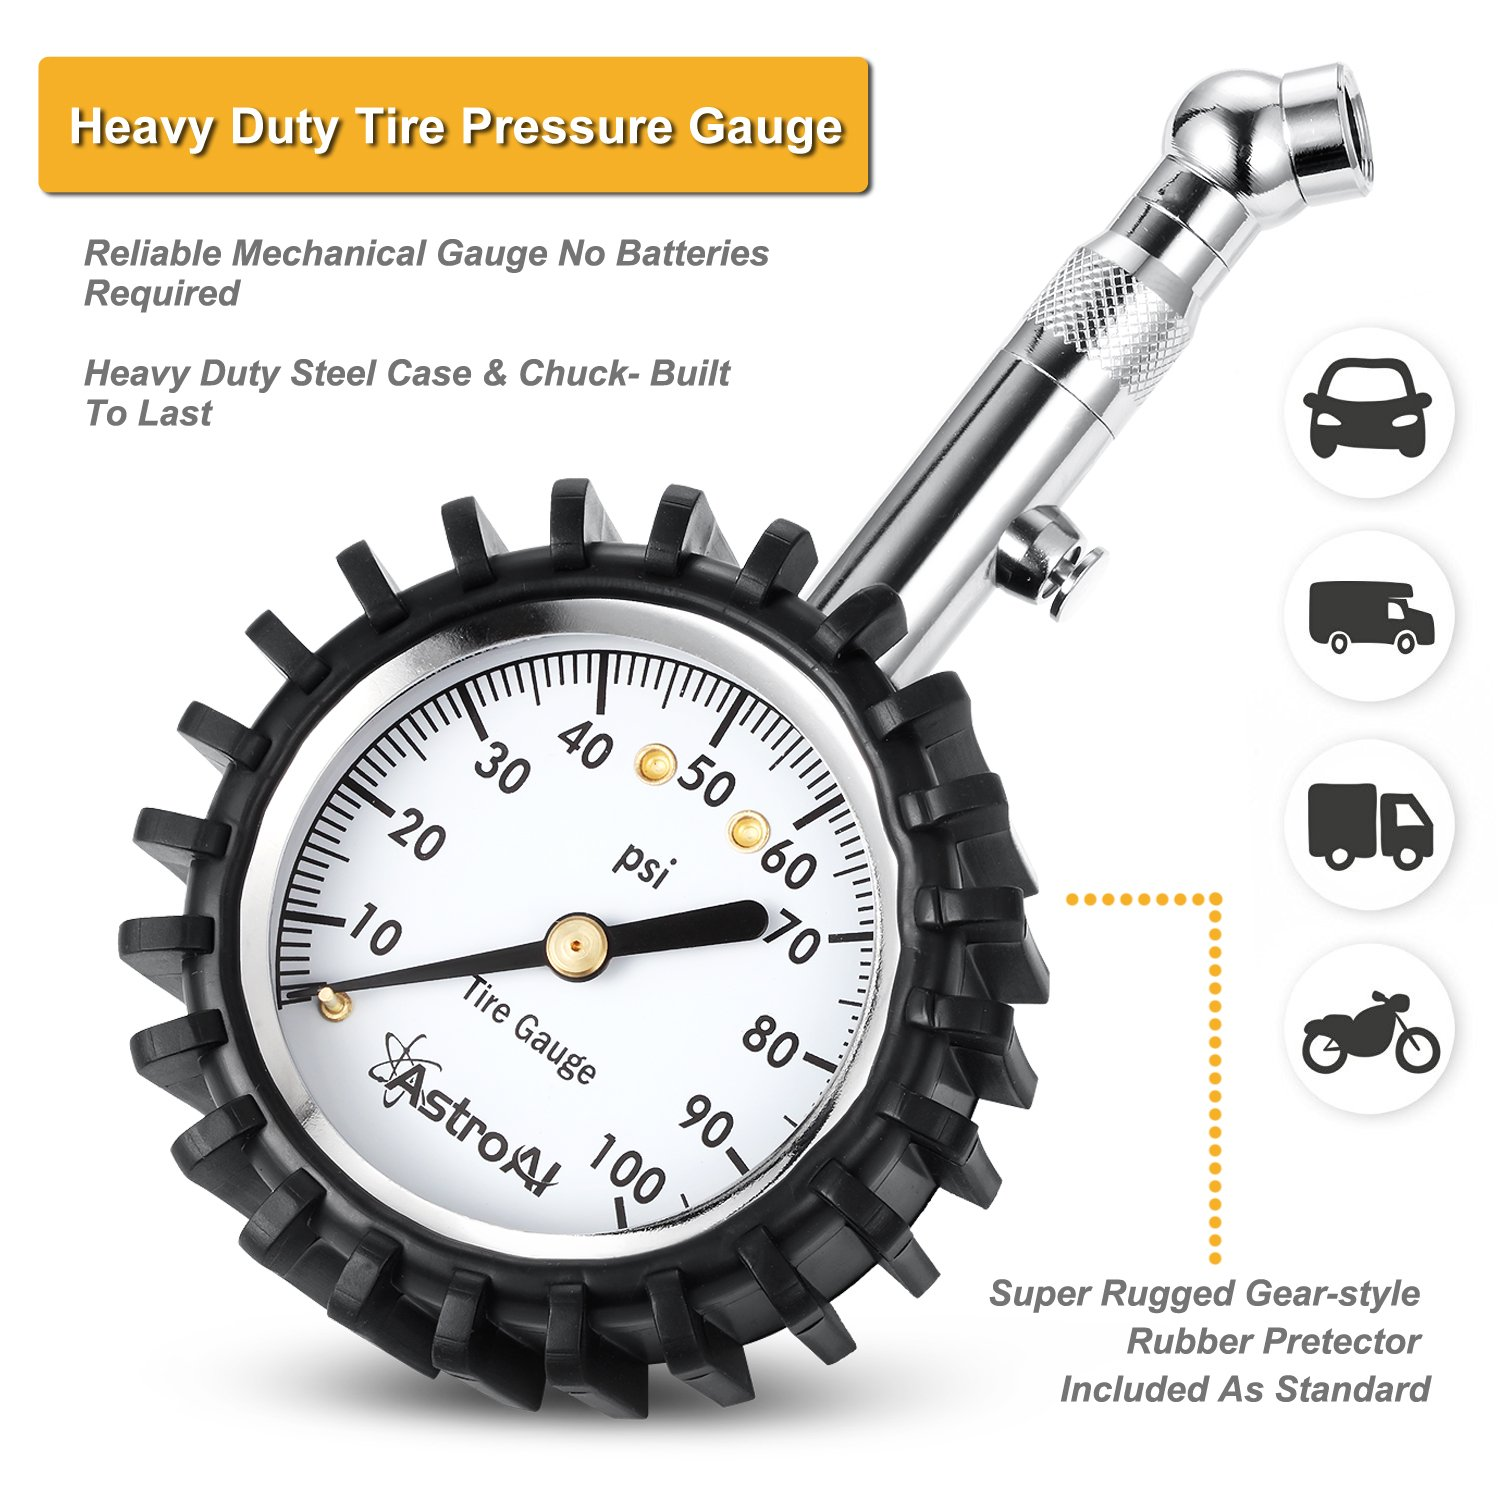 AstroAI Case of 50, Tire Pressure Gauge, 100 PSI Portable Heavy Duty Mechanical for Car Truck Motorcycle Bicycle with Integrated Bleed Button, Black by AstroAI (Image #4)